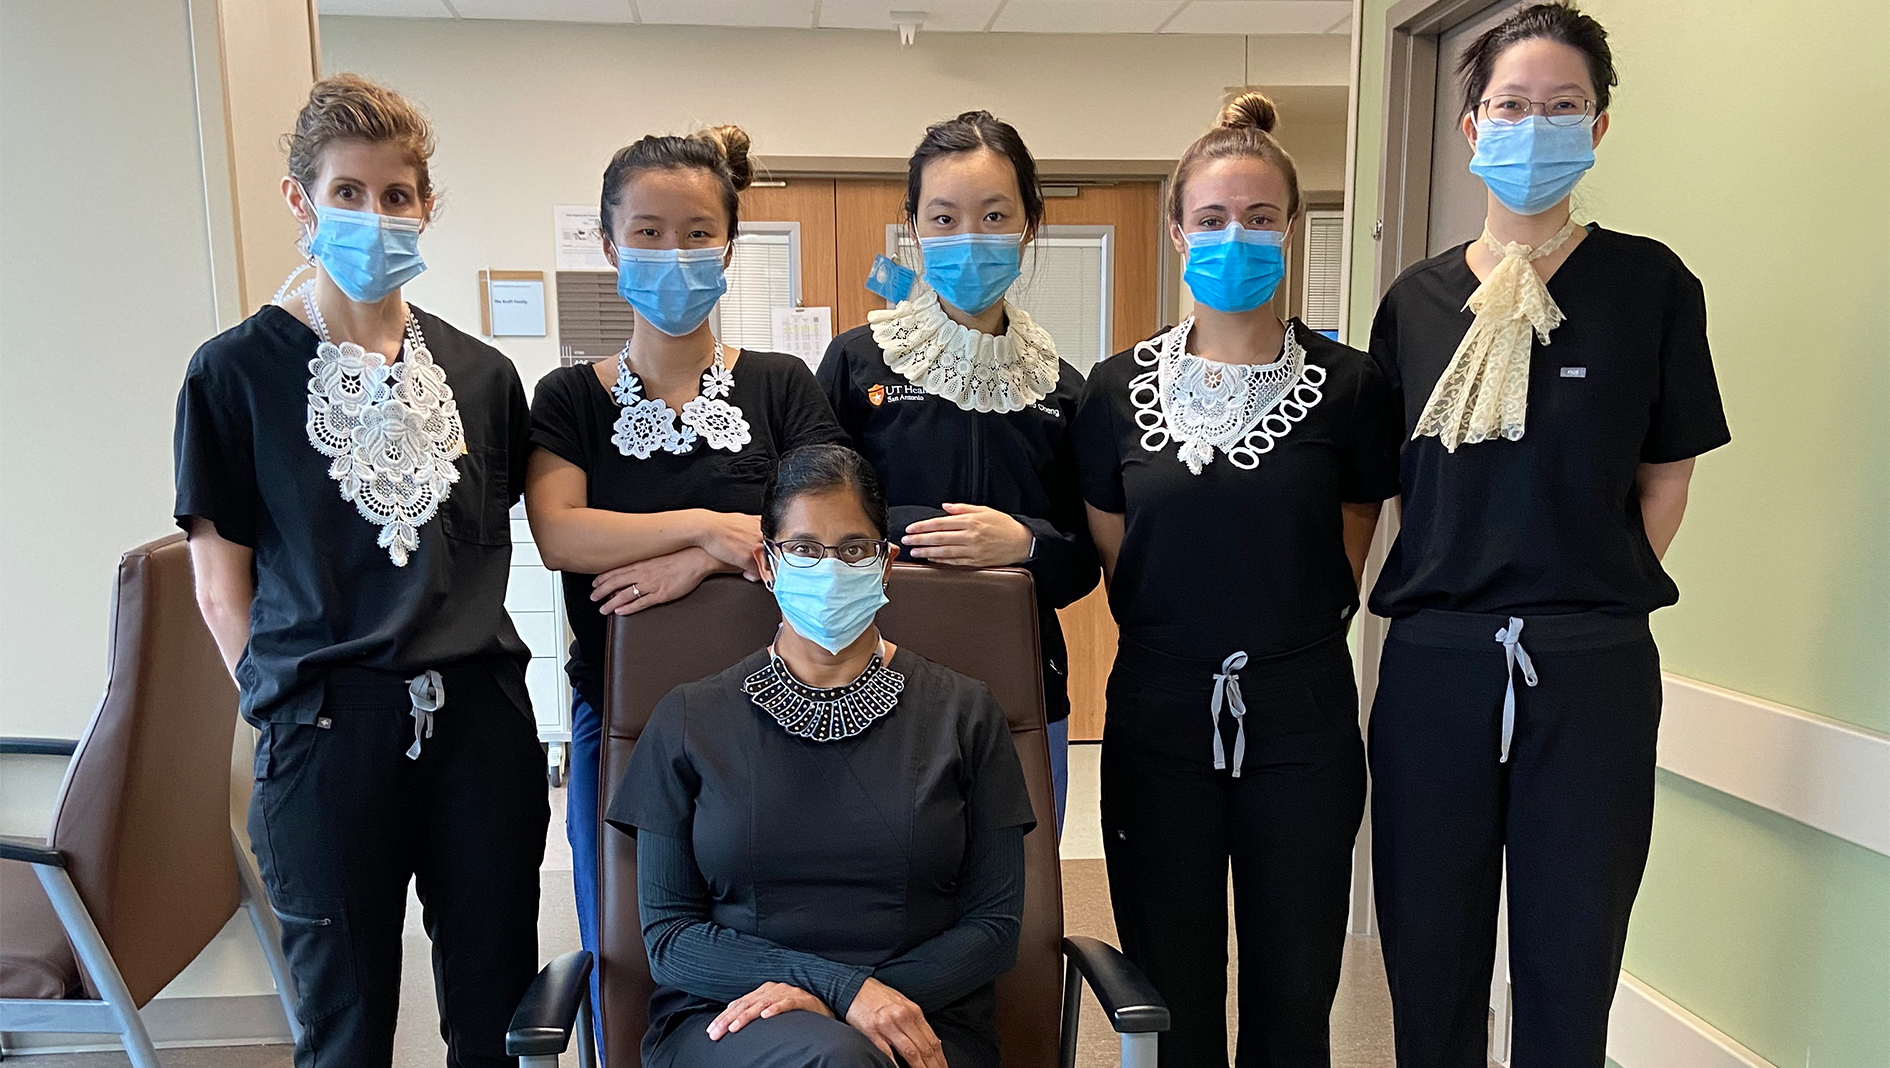 Six Family Medicine residents paying tribute to Ruth Bader Ginsberg.